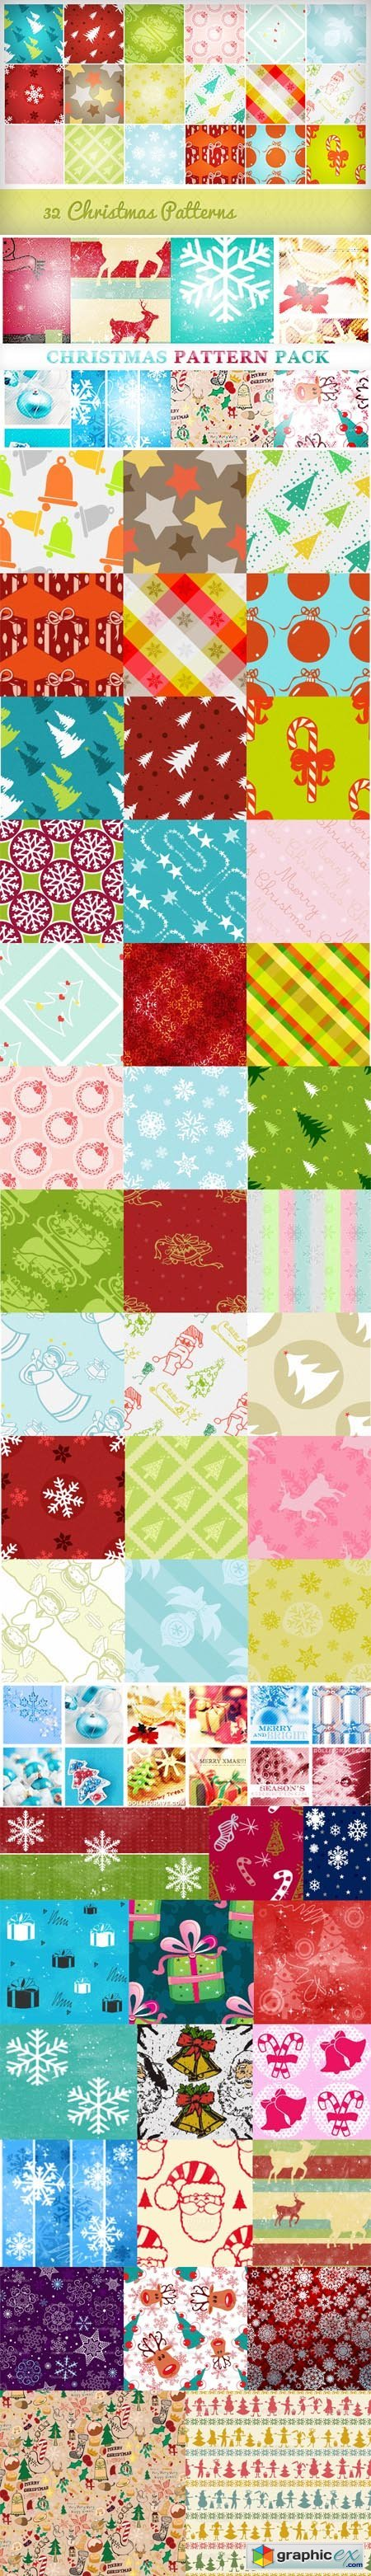 Christmas Pattern Huge Pack